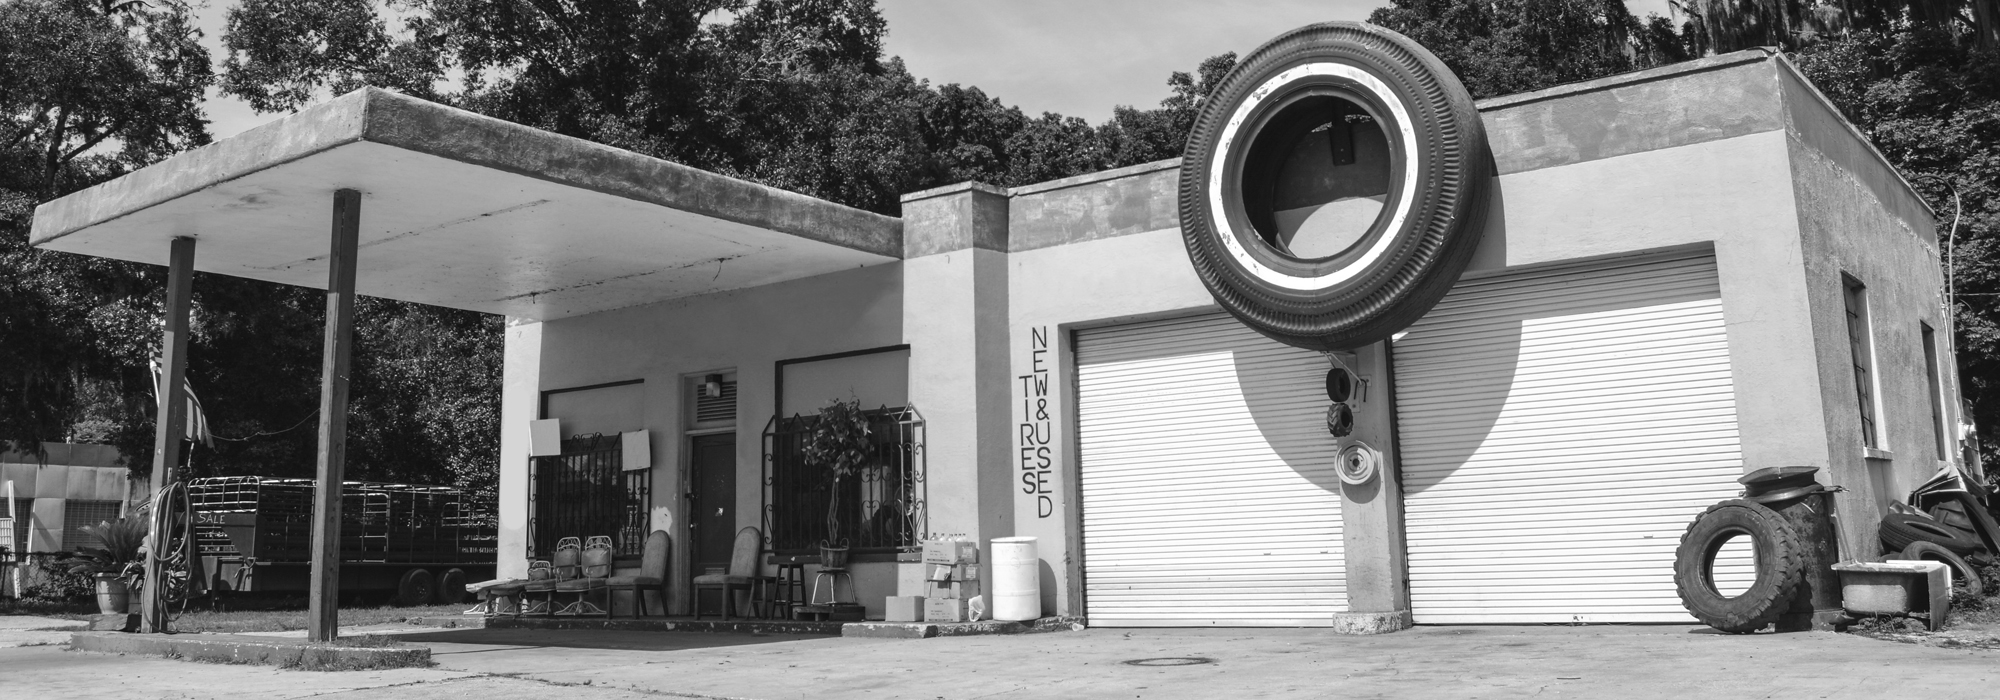 old-school-tire-shop